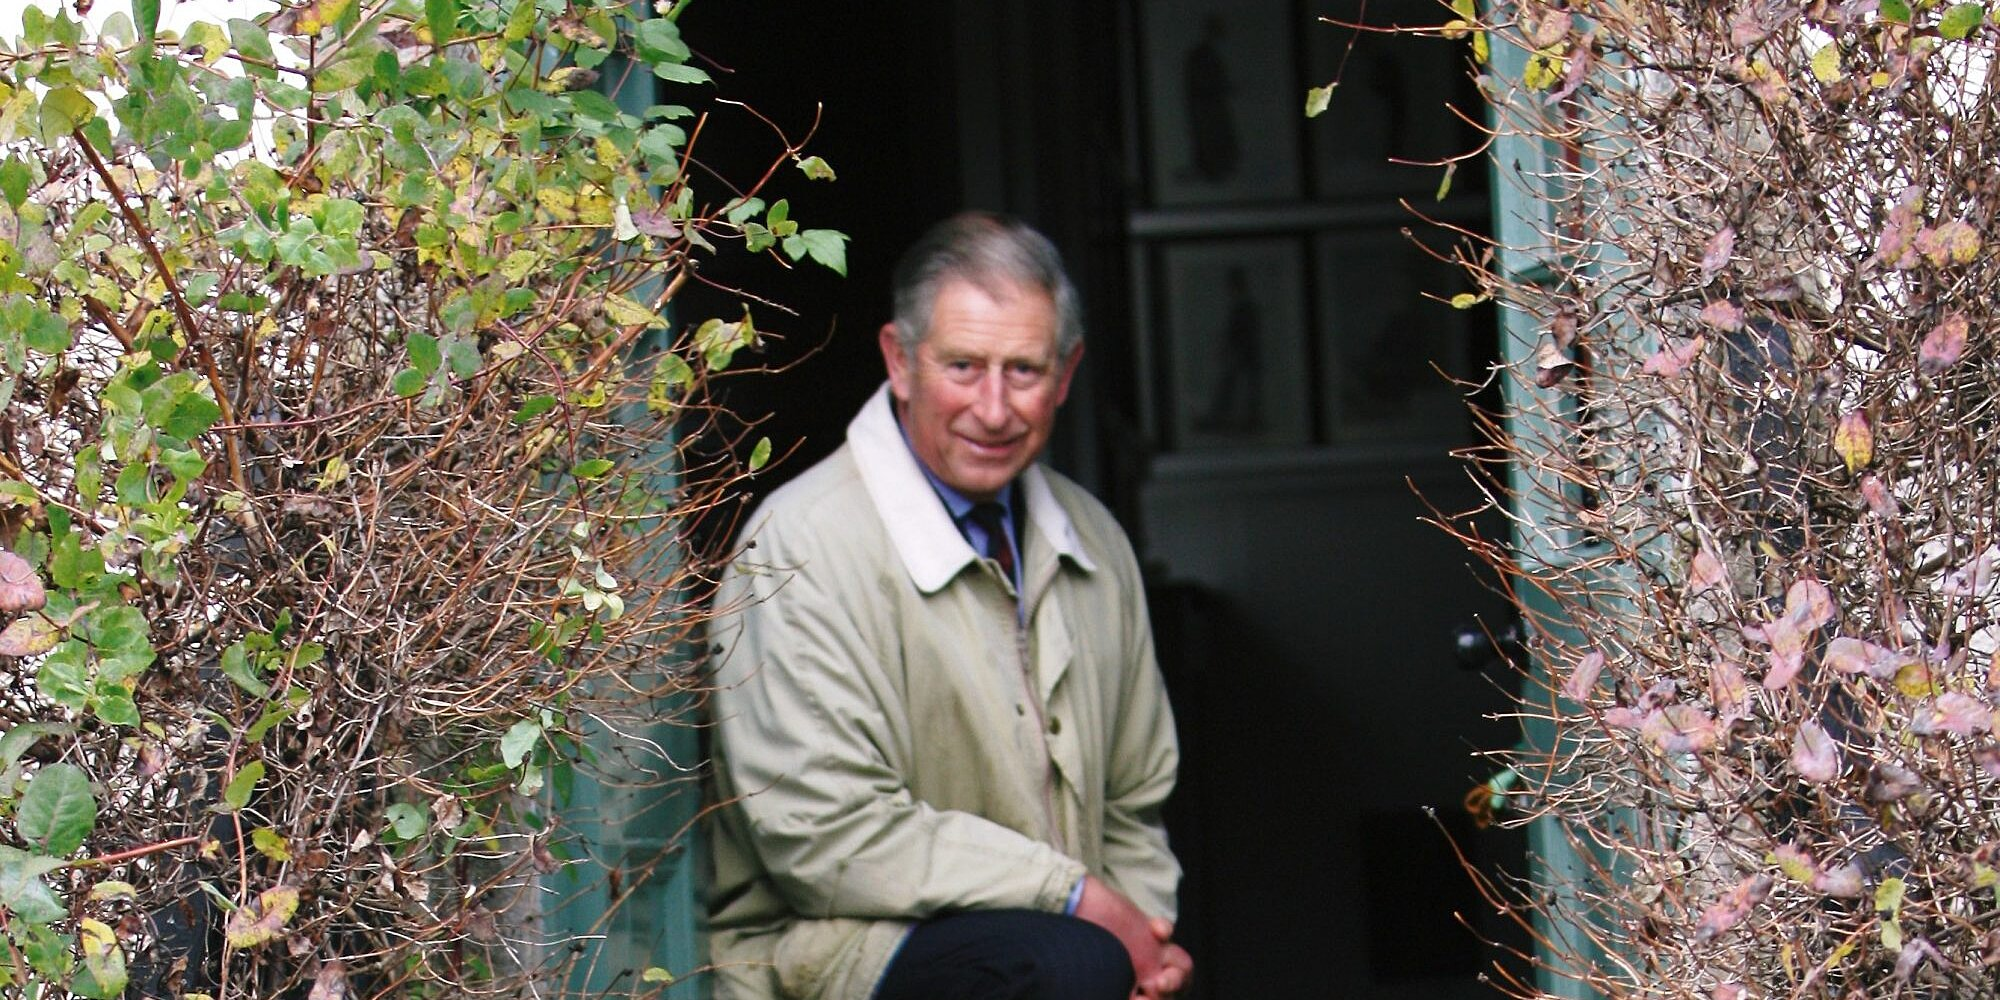 Prince Charles Is So Nuts for These Backyard 'Creatures' That He Lets Them in His House!